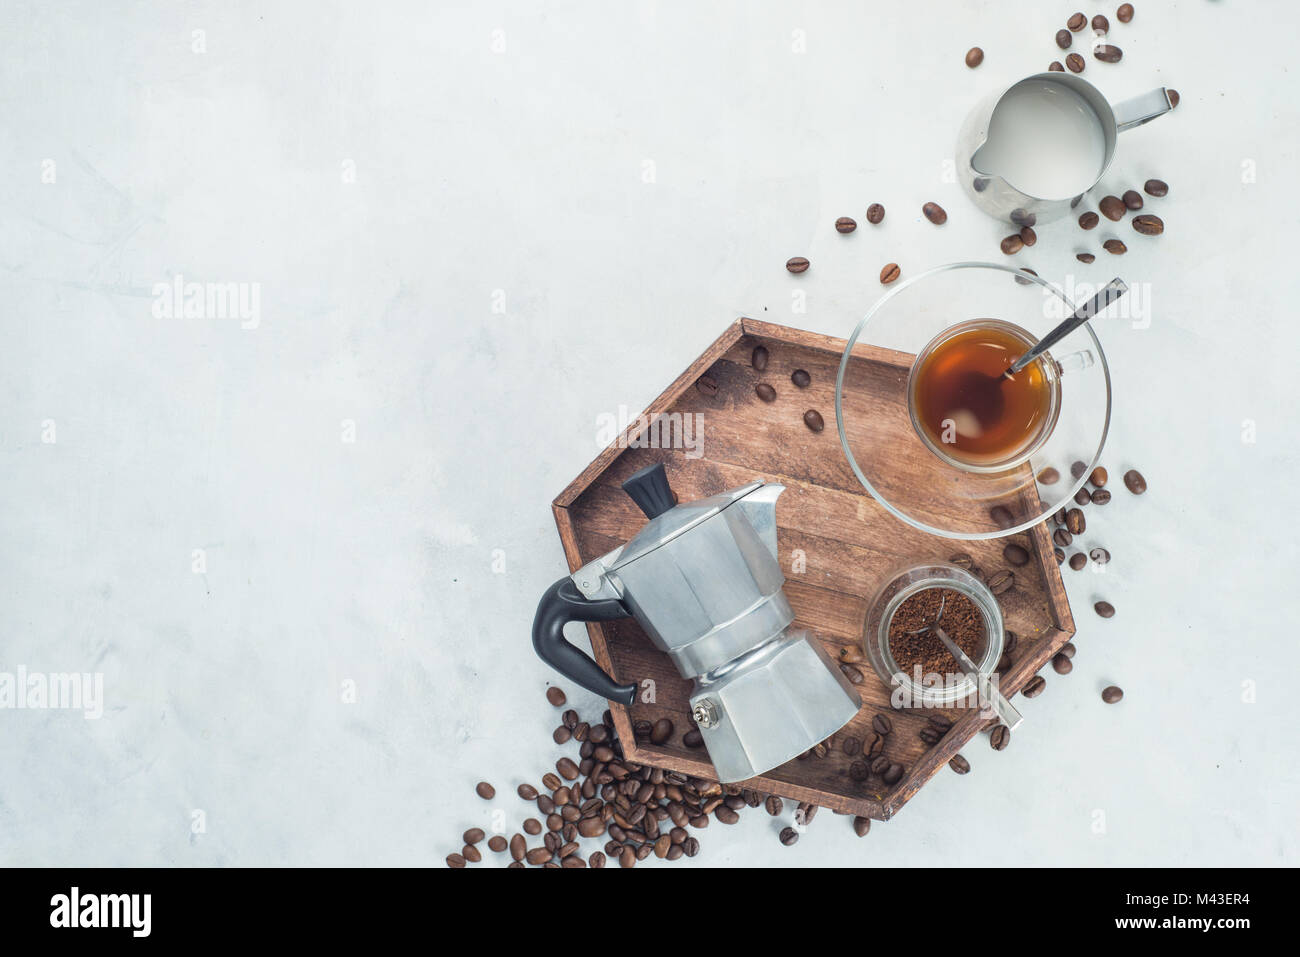 Wooden tray with Moka pot, espresso cup, ground coffee jar and coffee beans on a white concrete background with - Stock Image